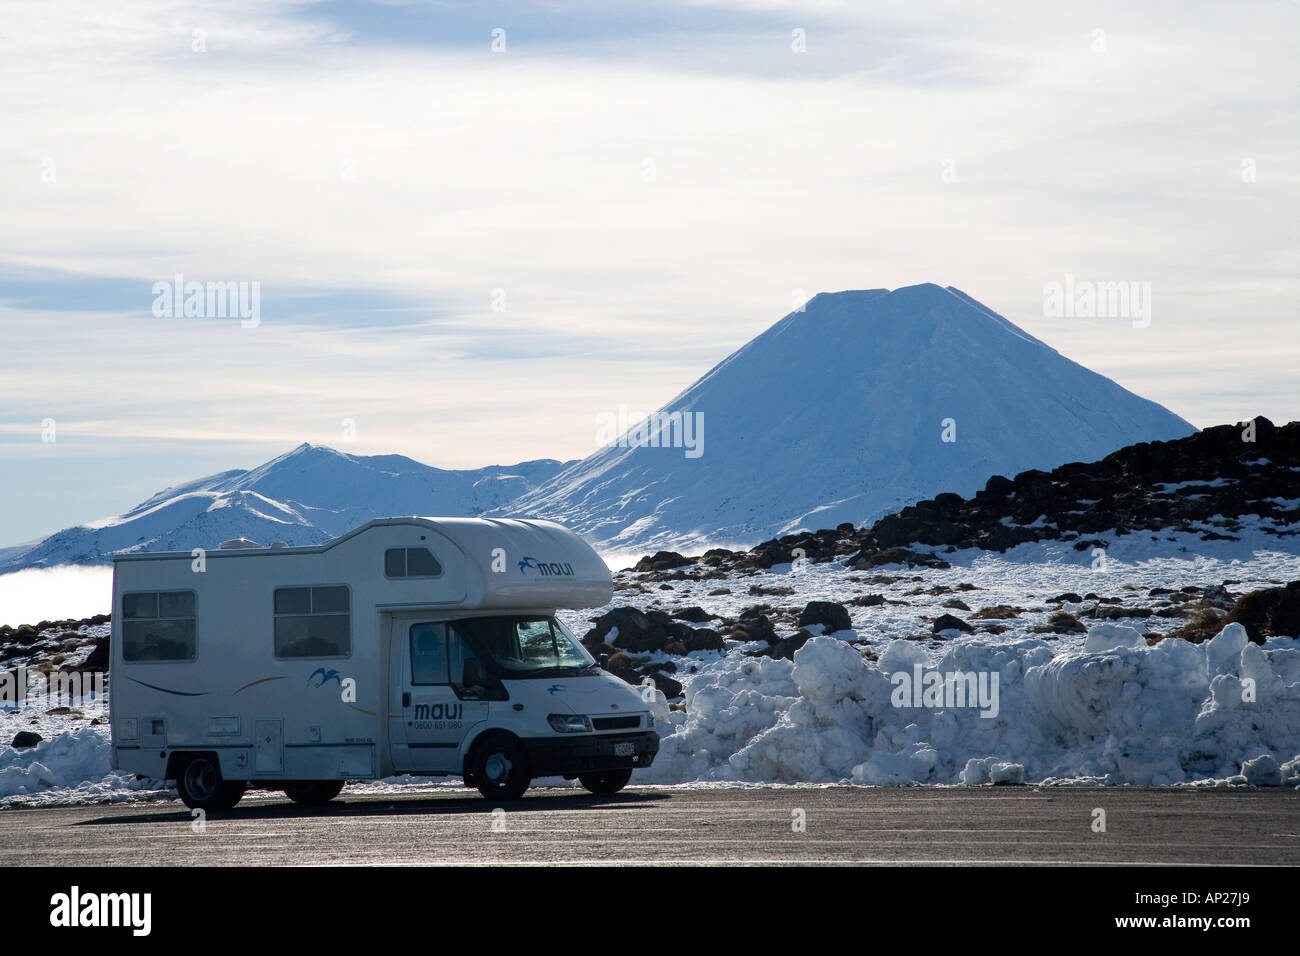 Campervan and Mt Ngauruhoe Tongariro National Park Central Plateau North Island New Zealand - Stock Image